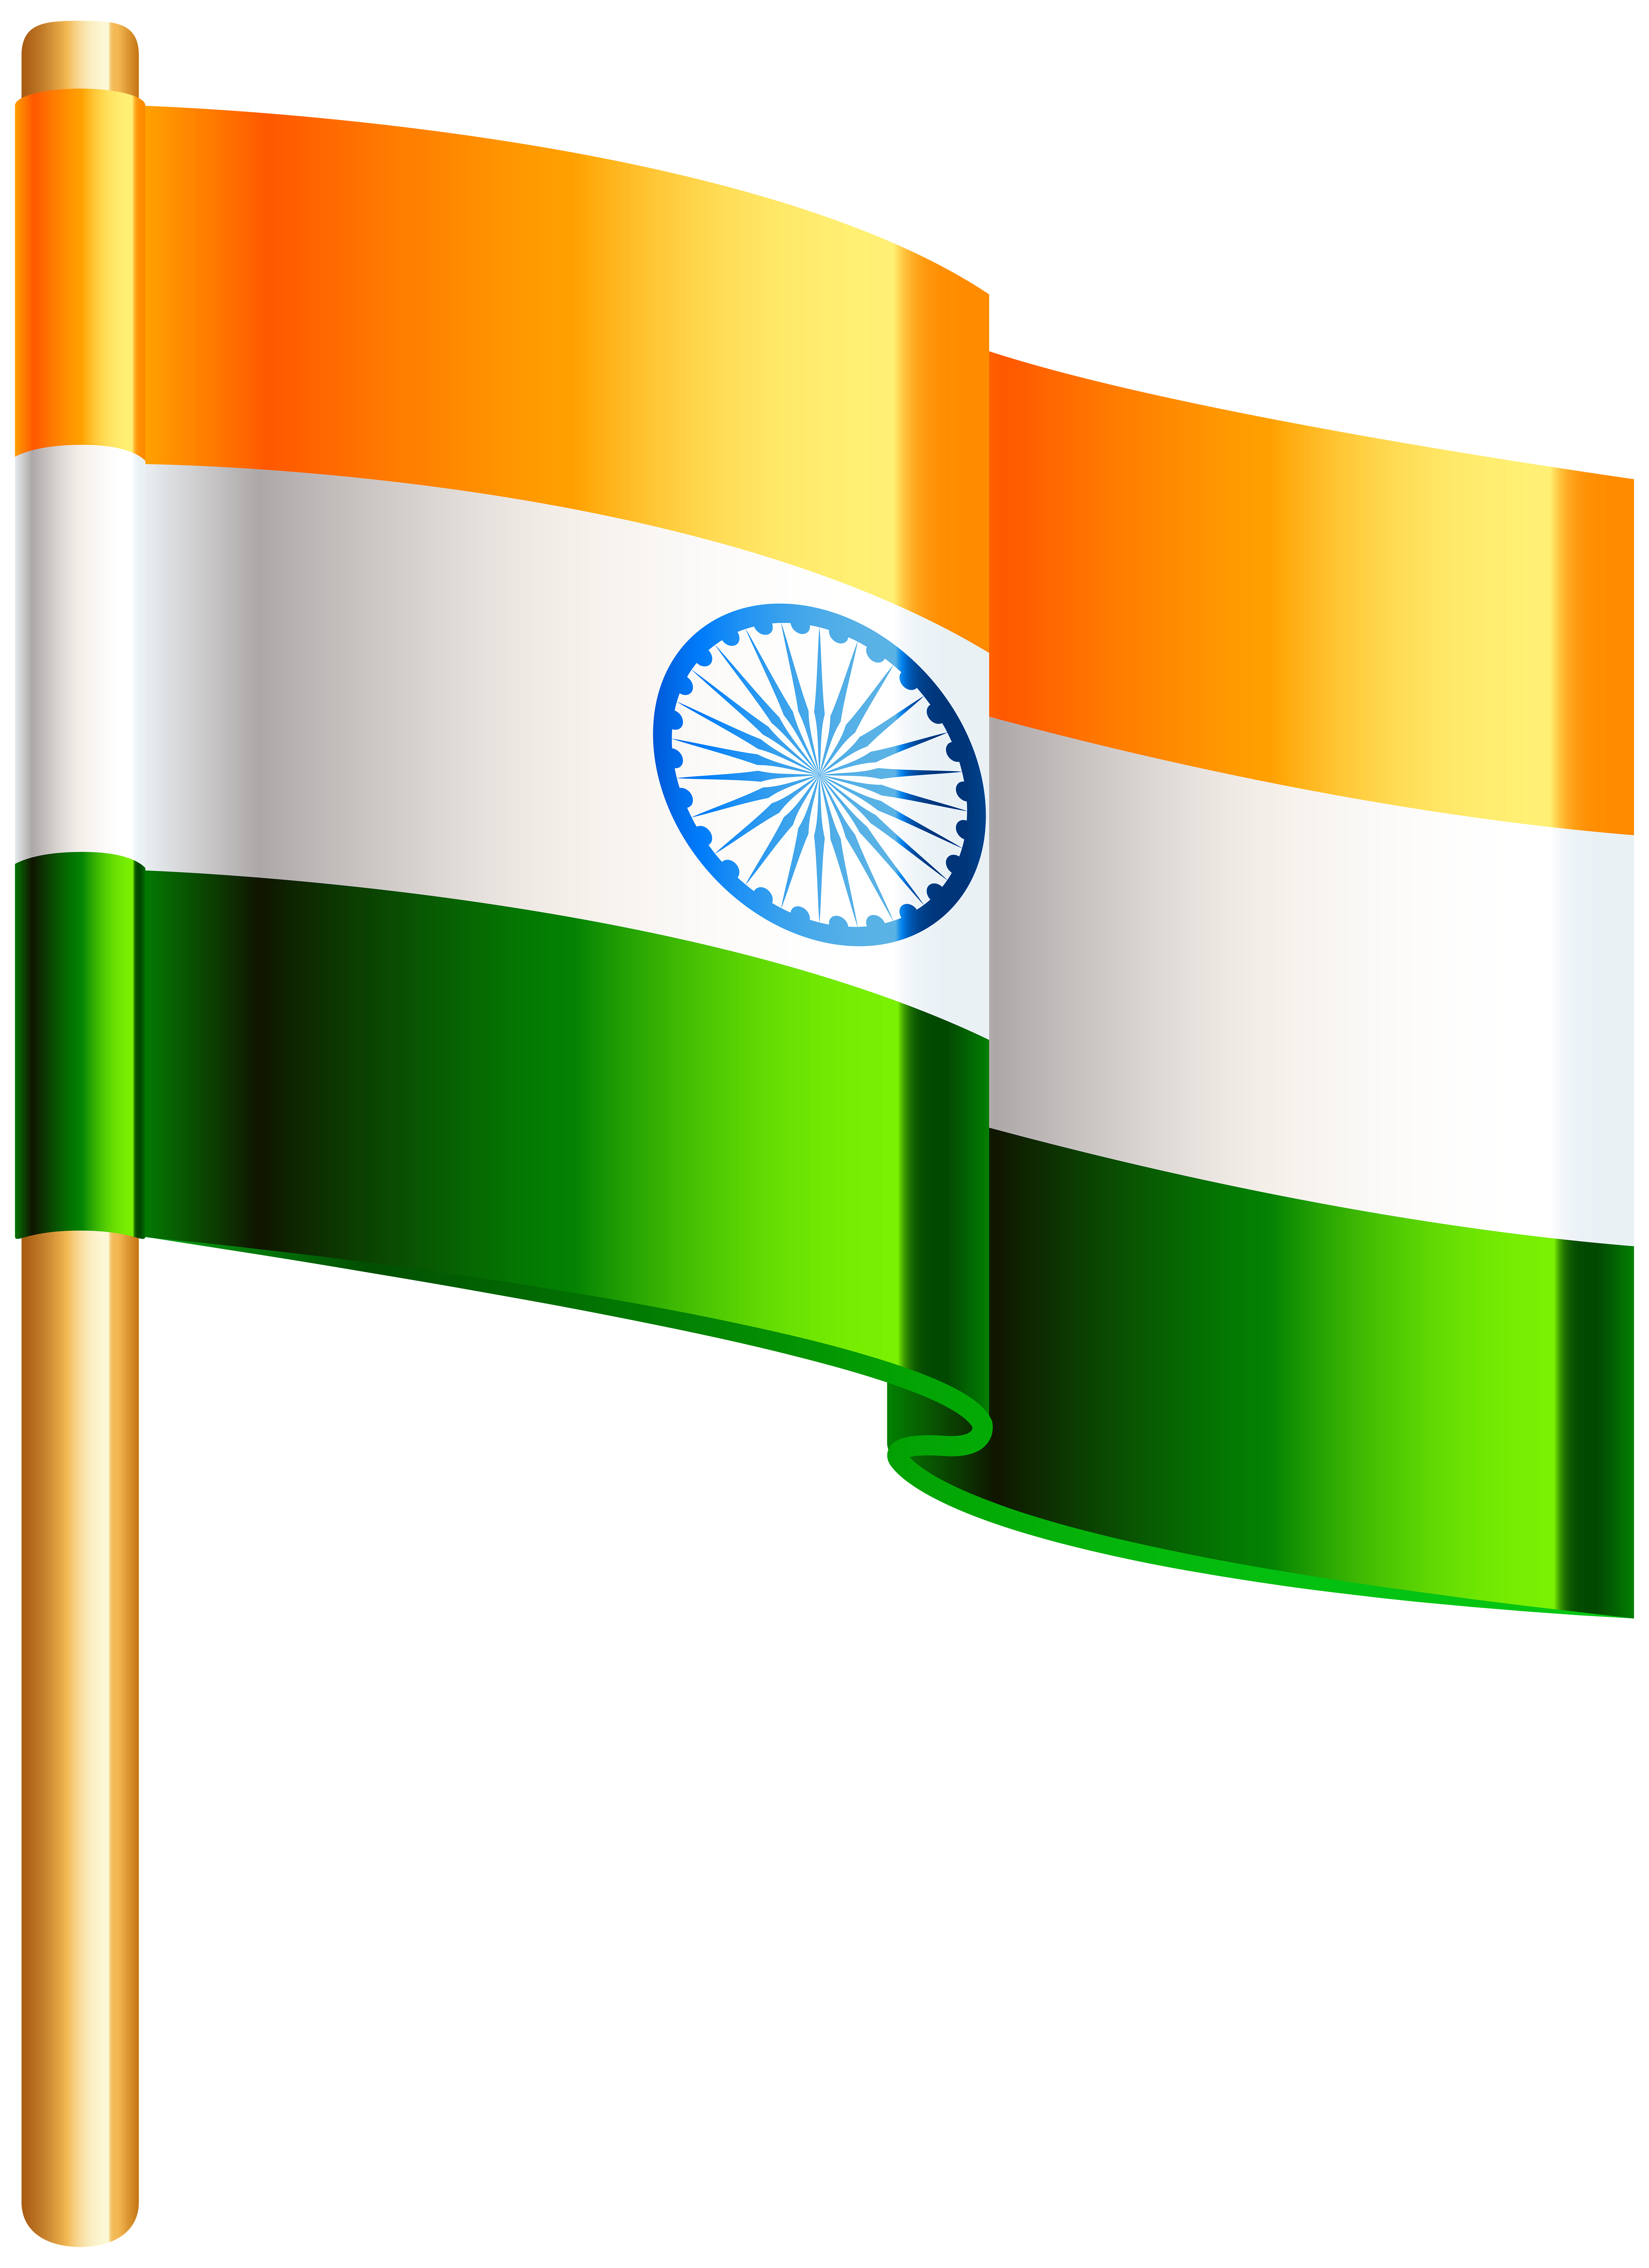 India Flag Png Clip Art Image Gallery Yopriceville High Quality Images And Transp Happy Independence Day Images Independence Day Images Indian Flag Images